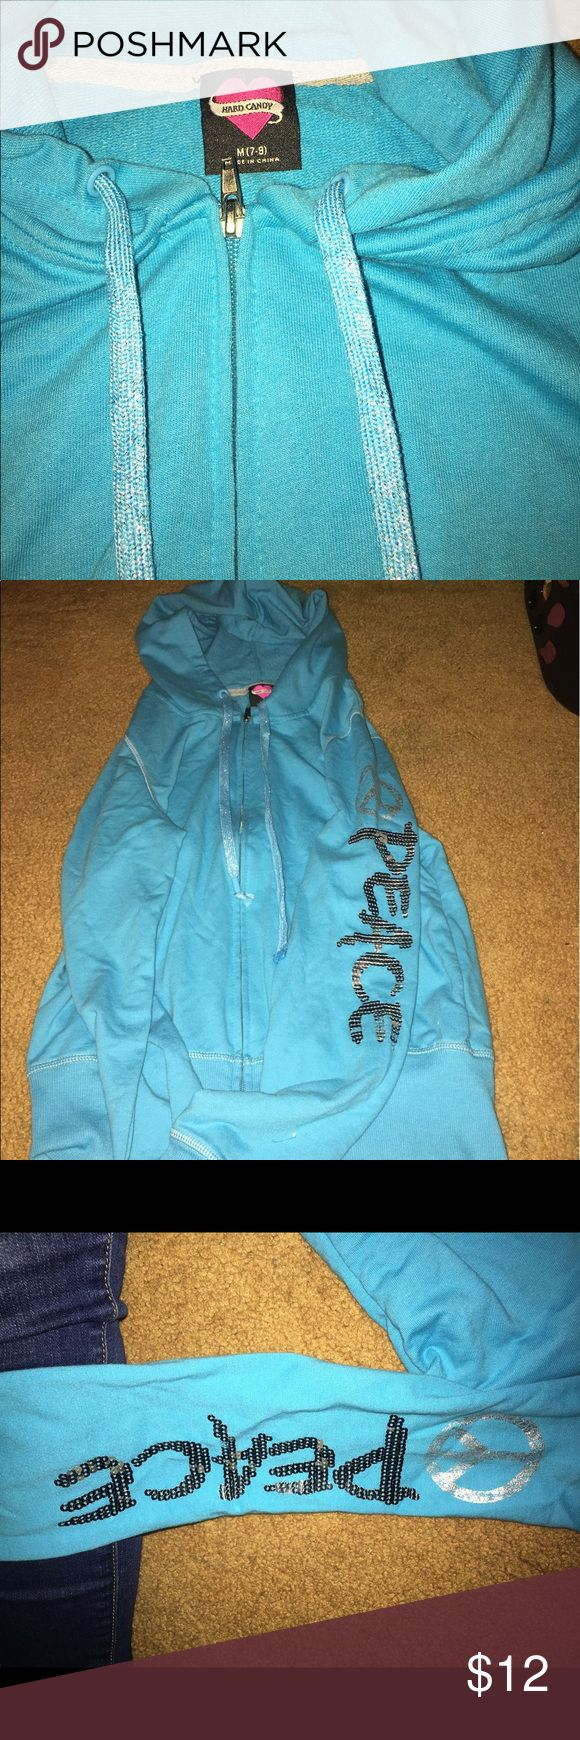 "Hard candy blue zip up hoody NWOT- Blue zip up sweat shirt with ""peace"" on the sleeve Hard Candy Tops Sweatshirts & Hoodies"